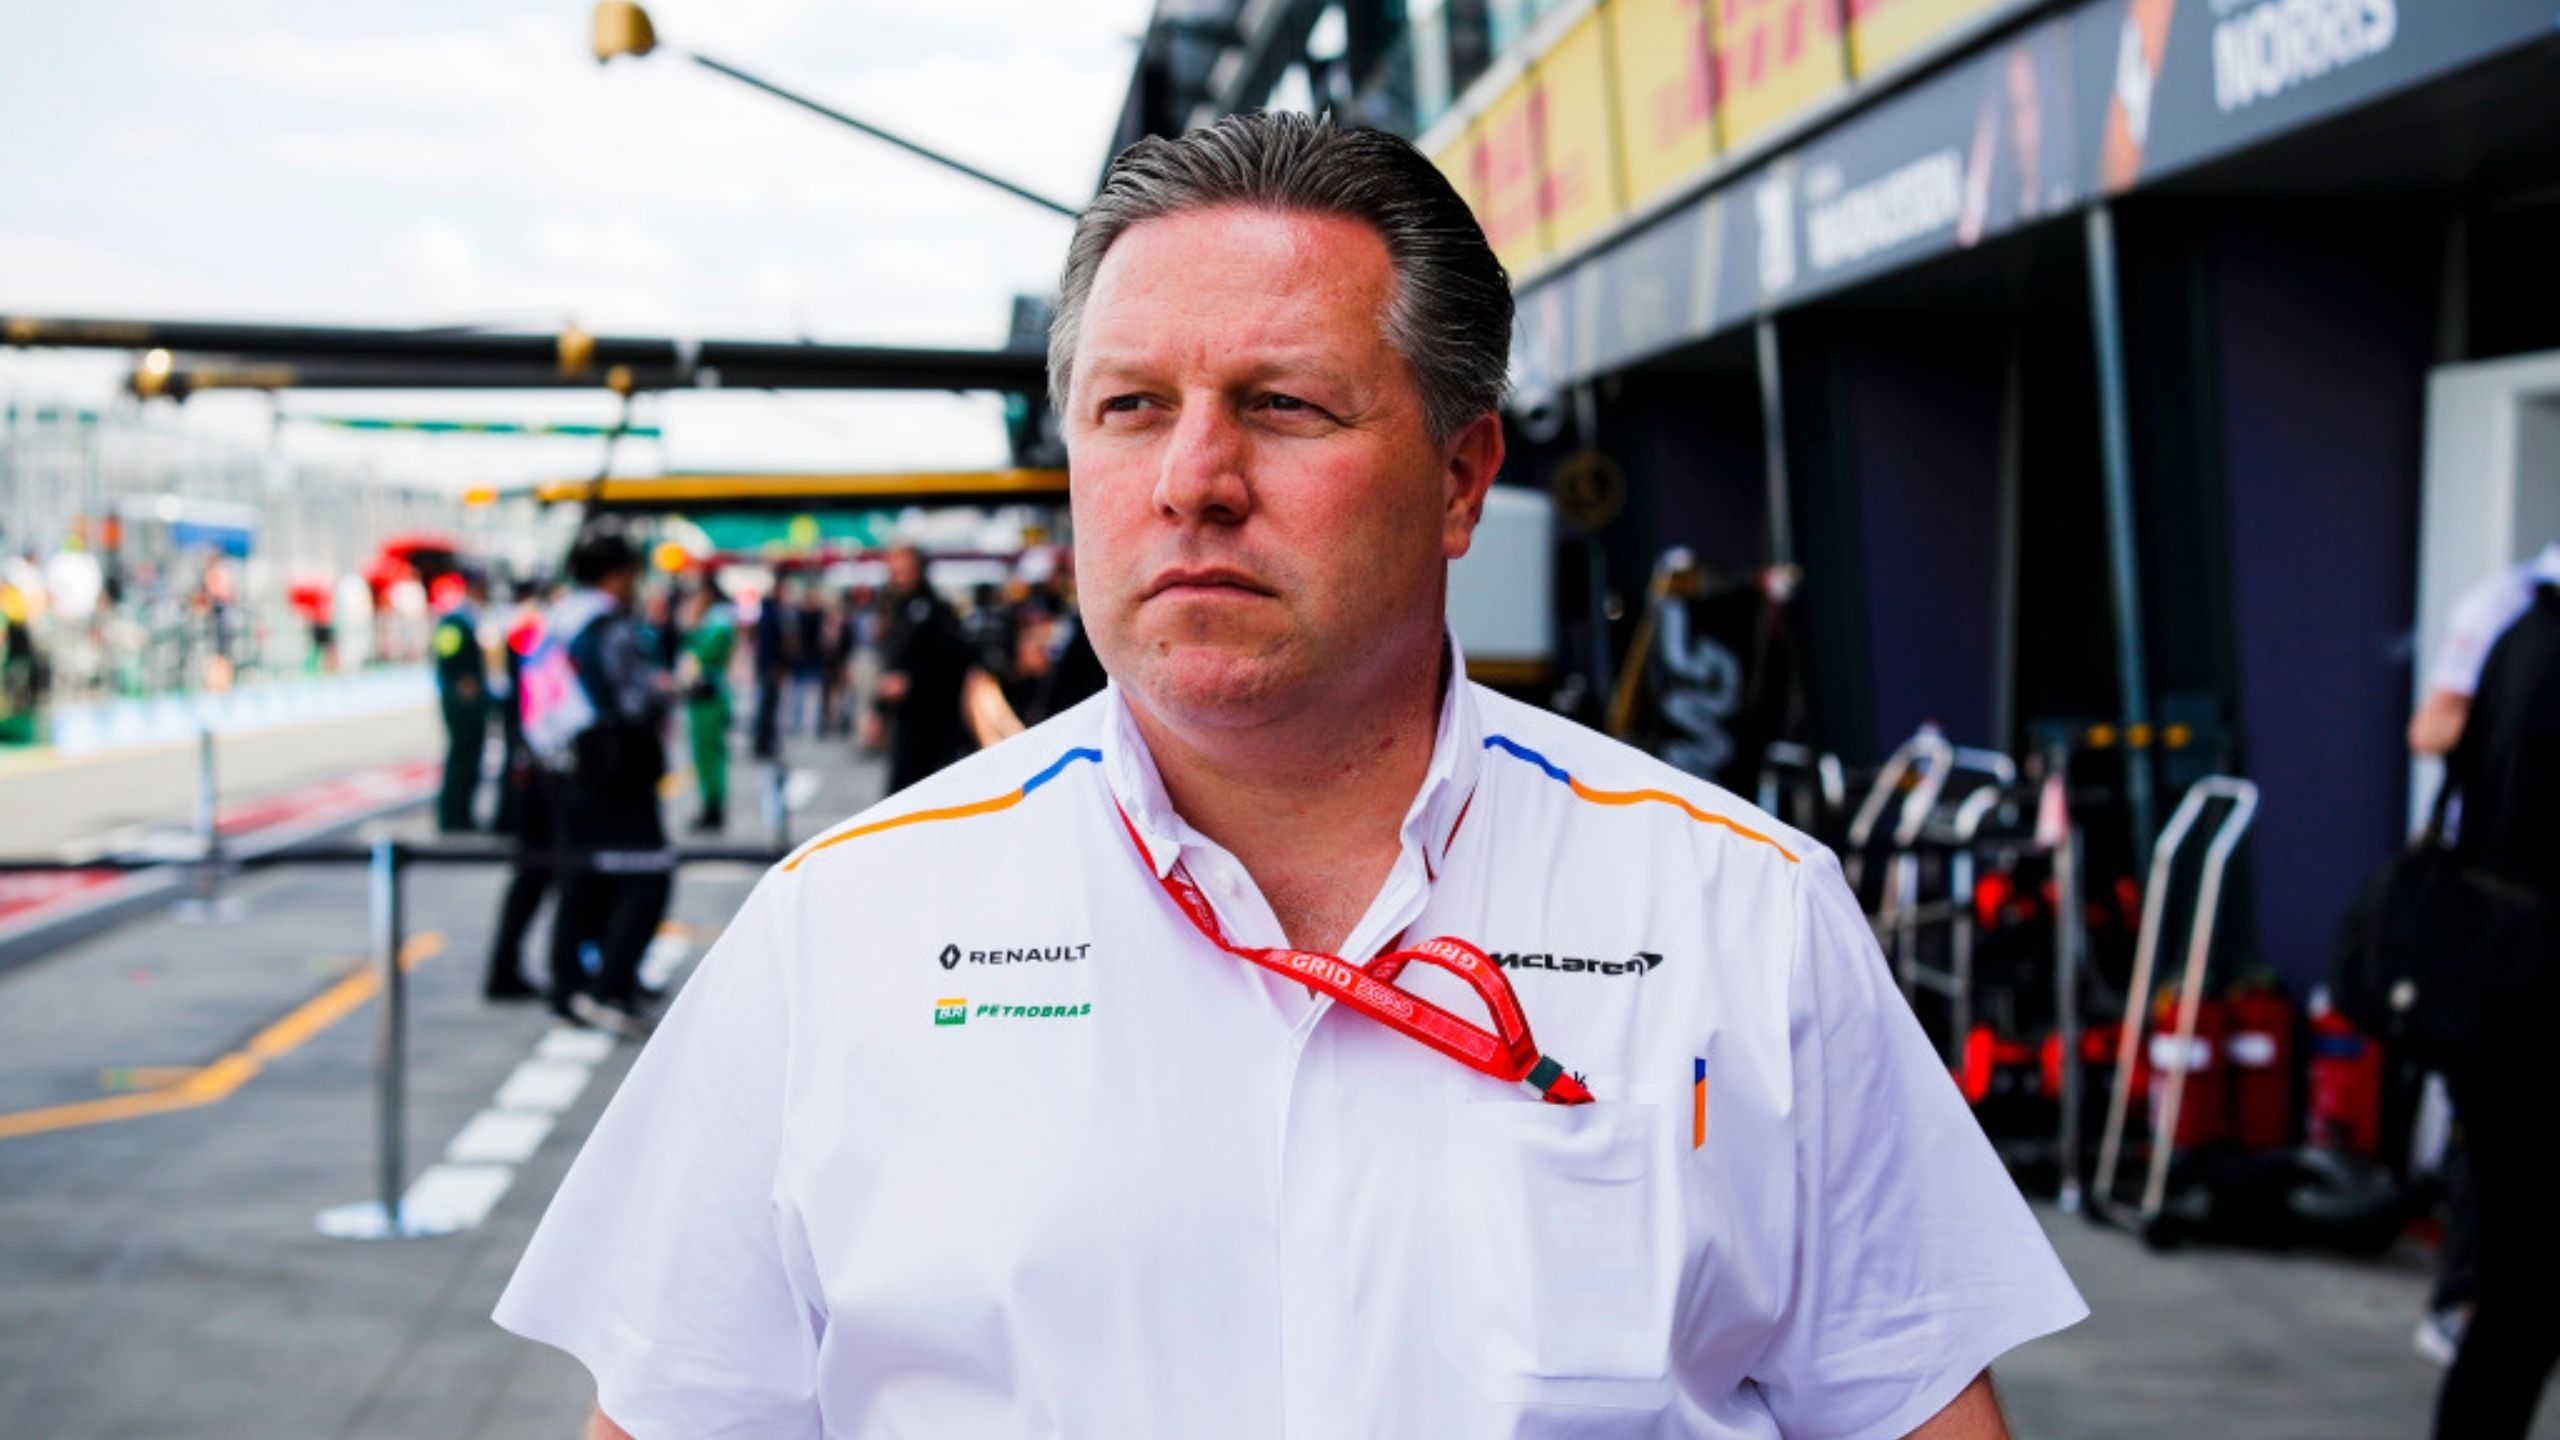 """""""I think it will be introduced in the next few years"""" - McLaren CEO Zak Brown proposes a budget cap for driver salaries"""